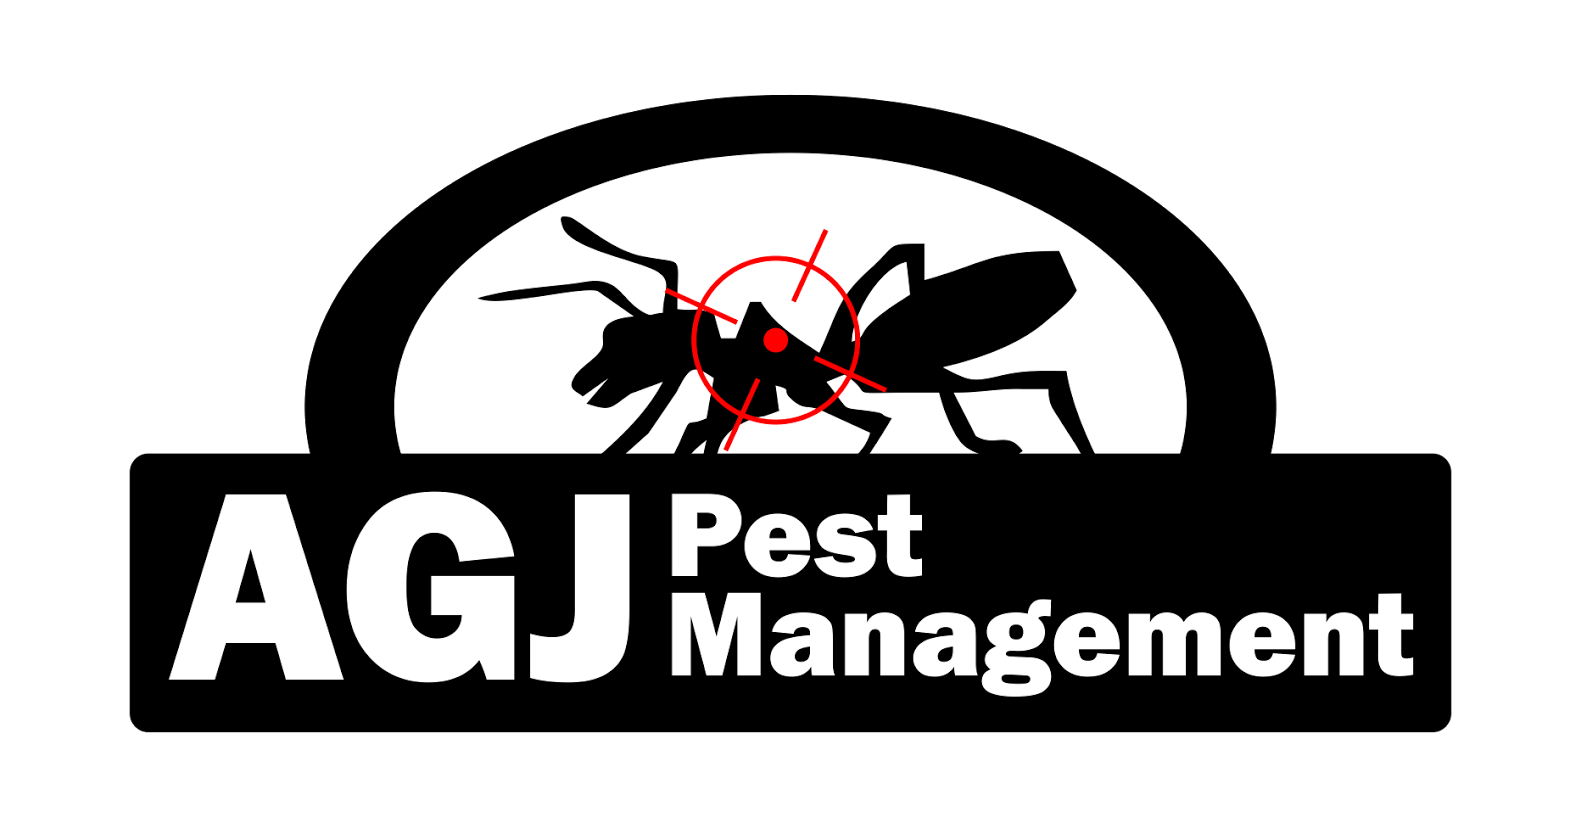 AGJ Pest Management